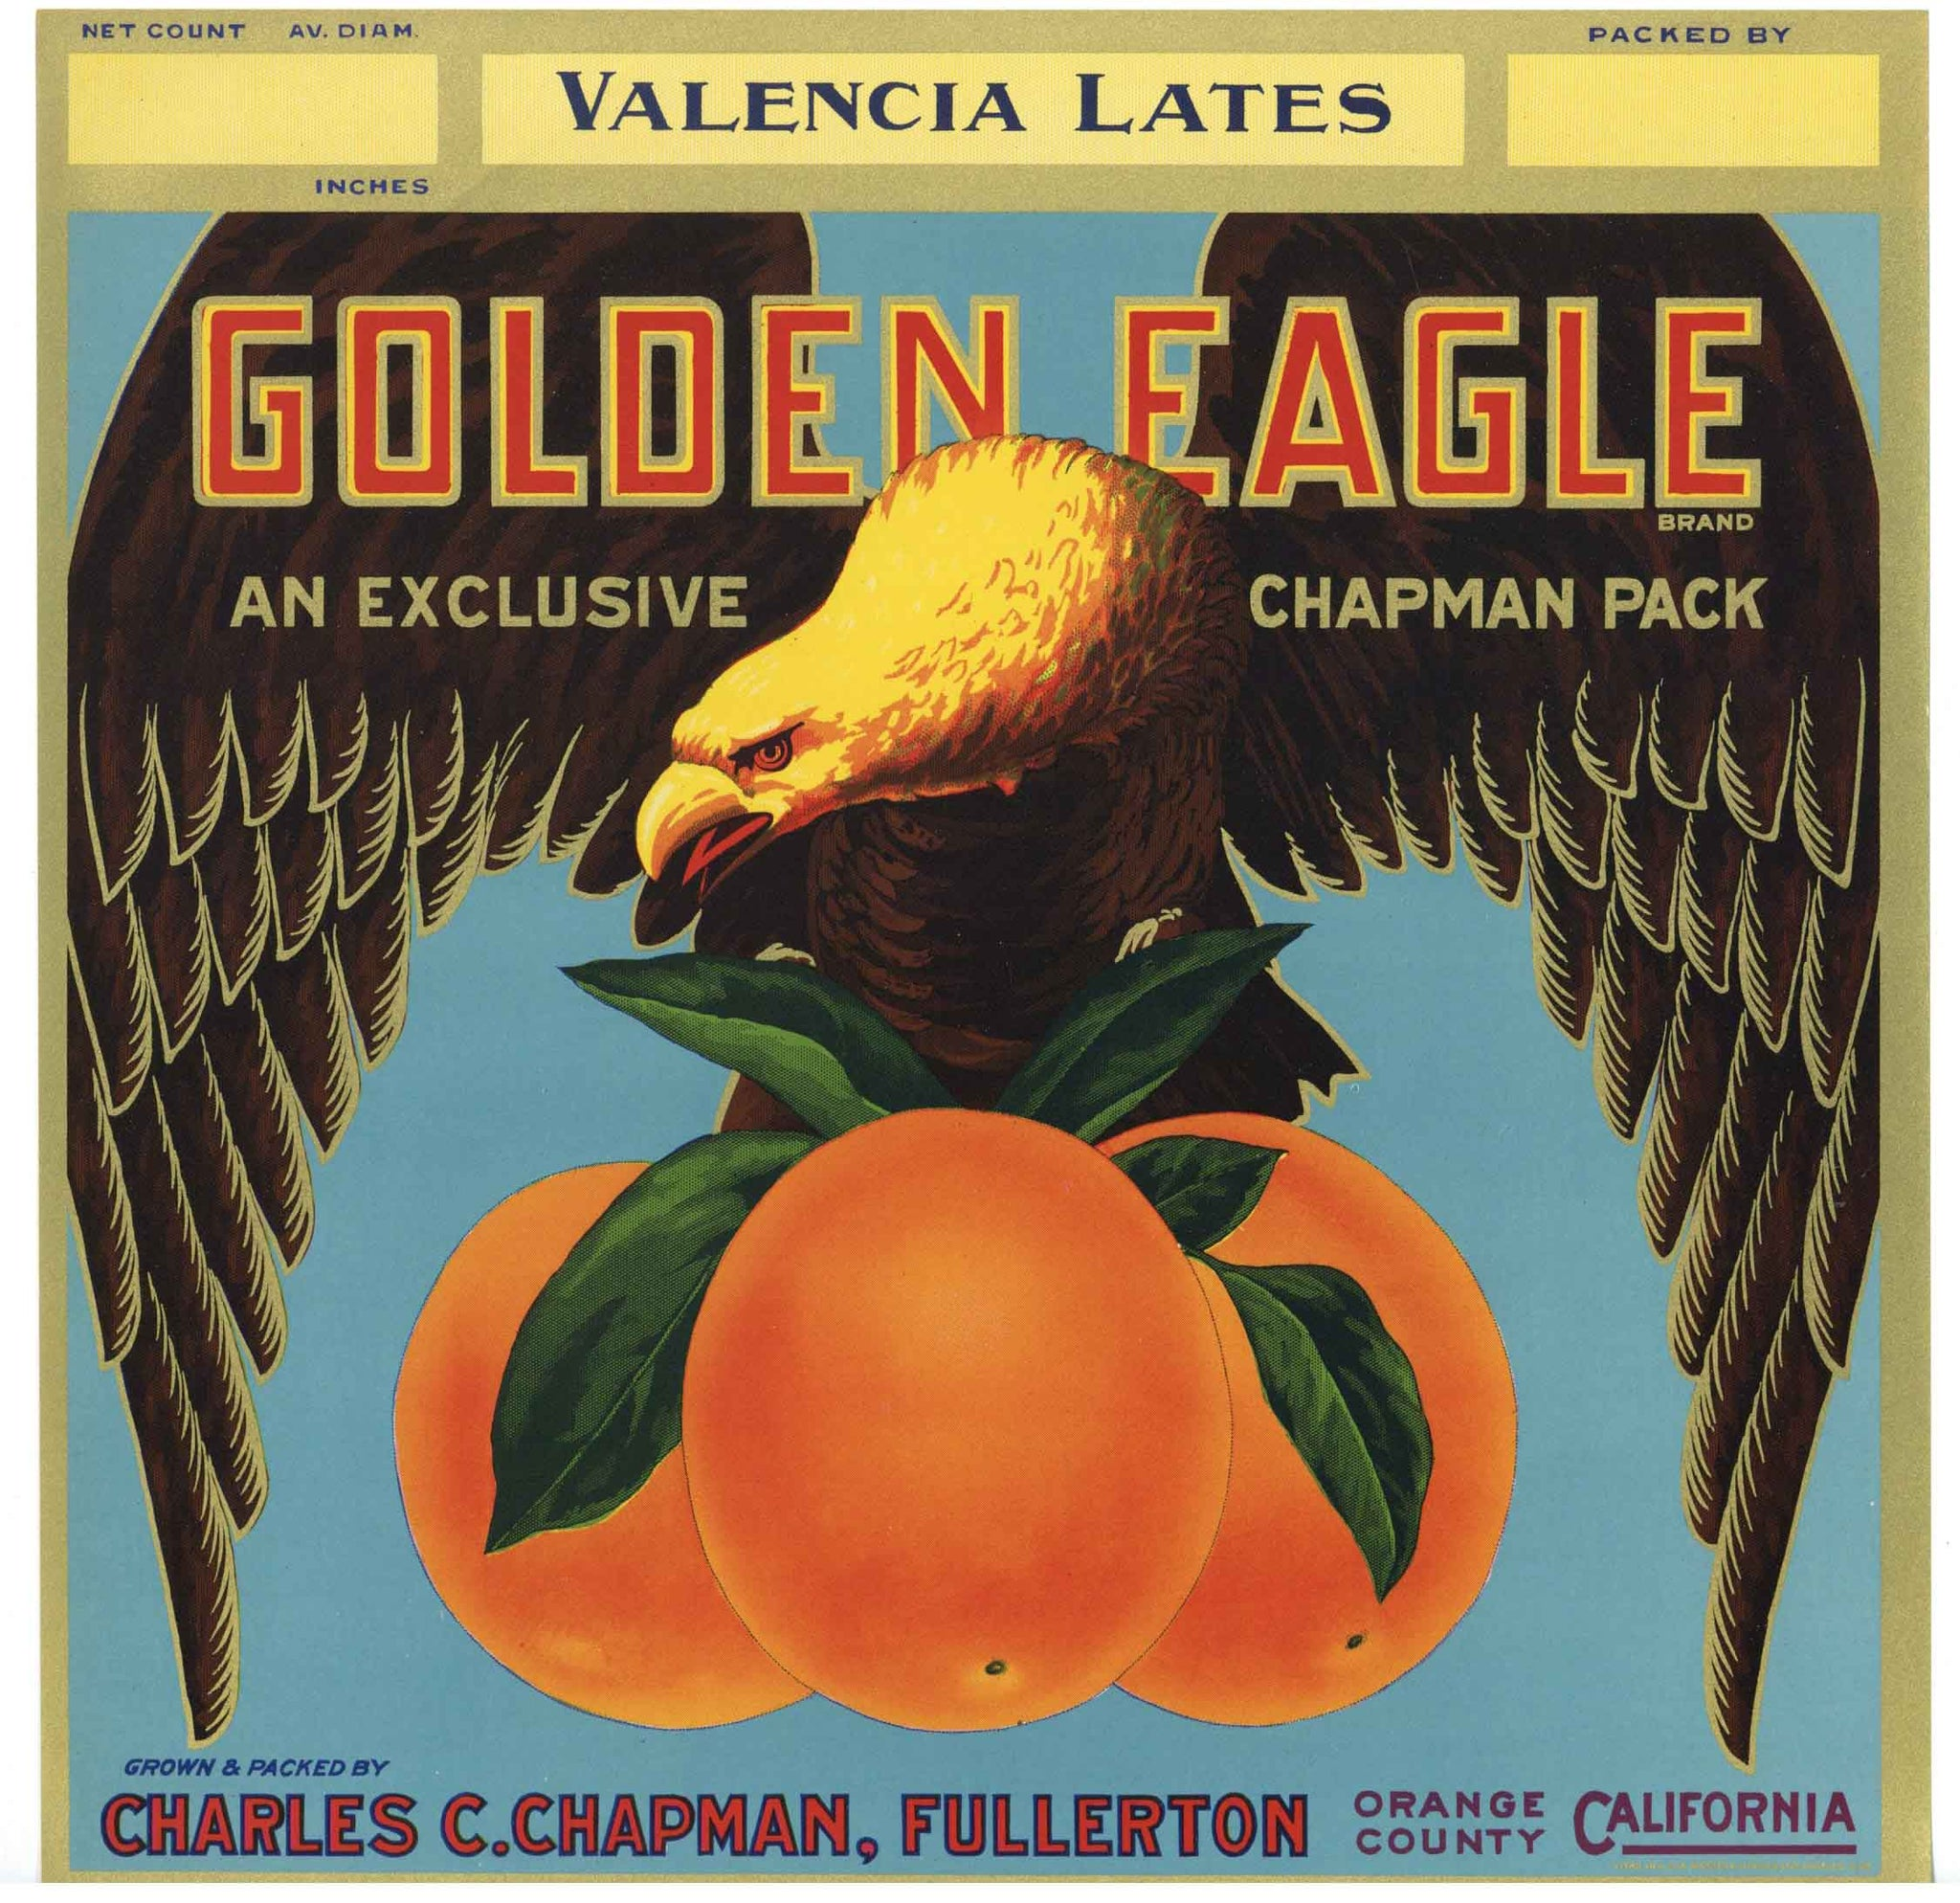 Golden Eagle Brand Vintage Fullerton Orange Crate Label, vl, ht